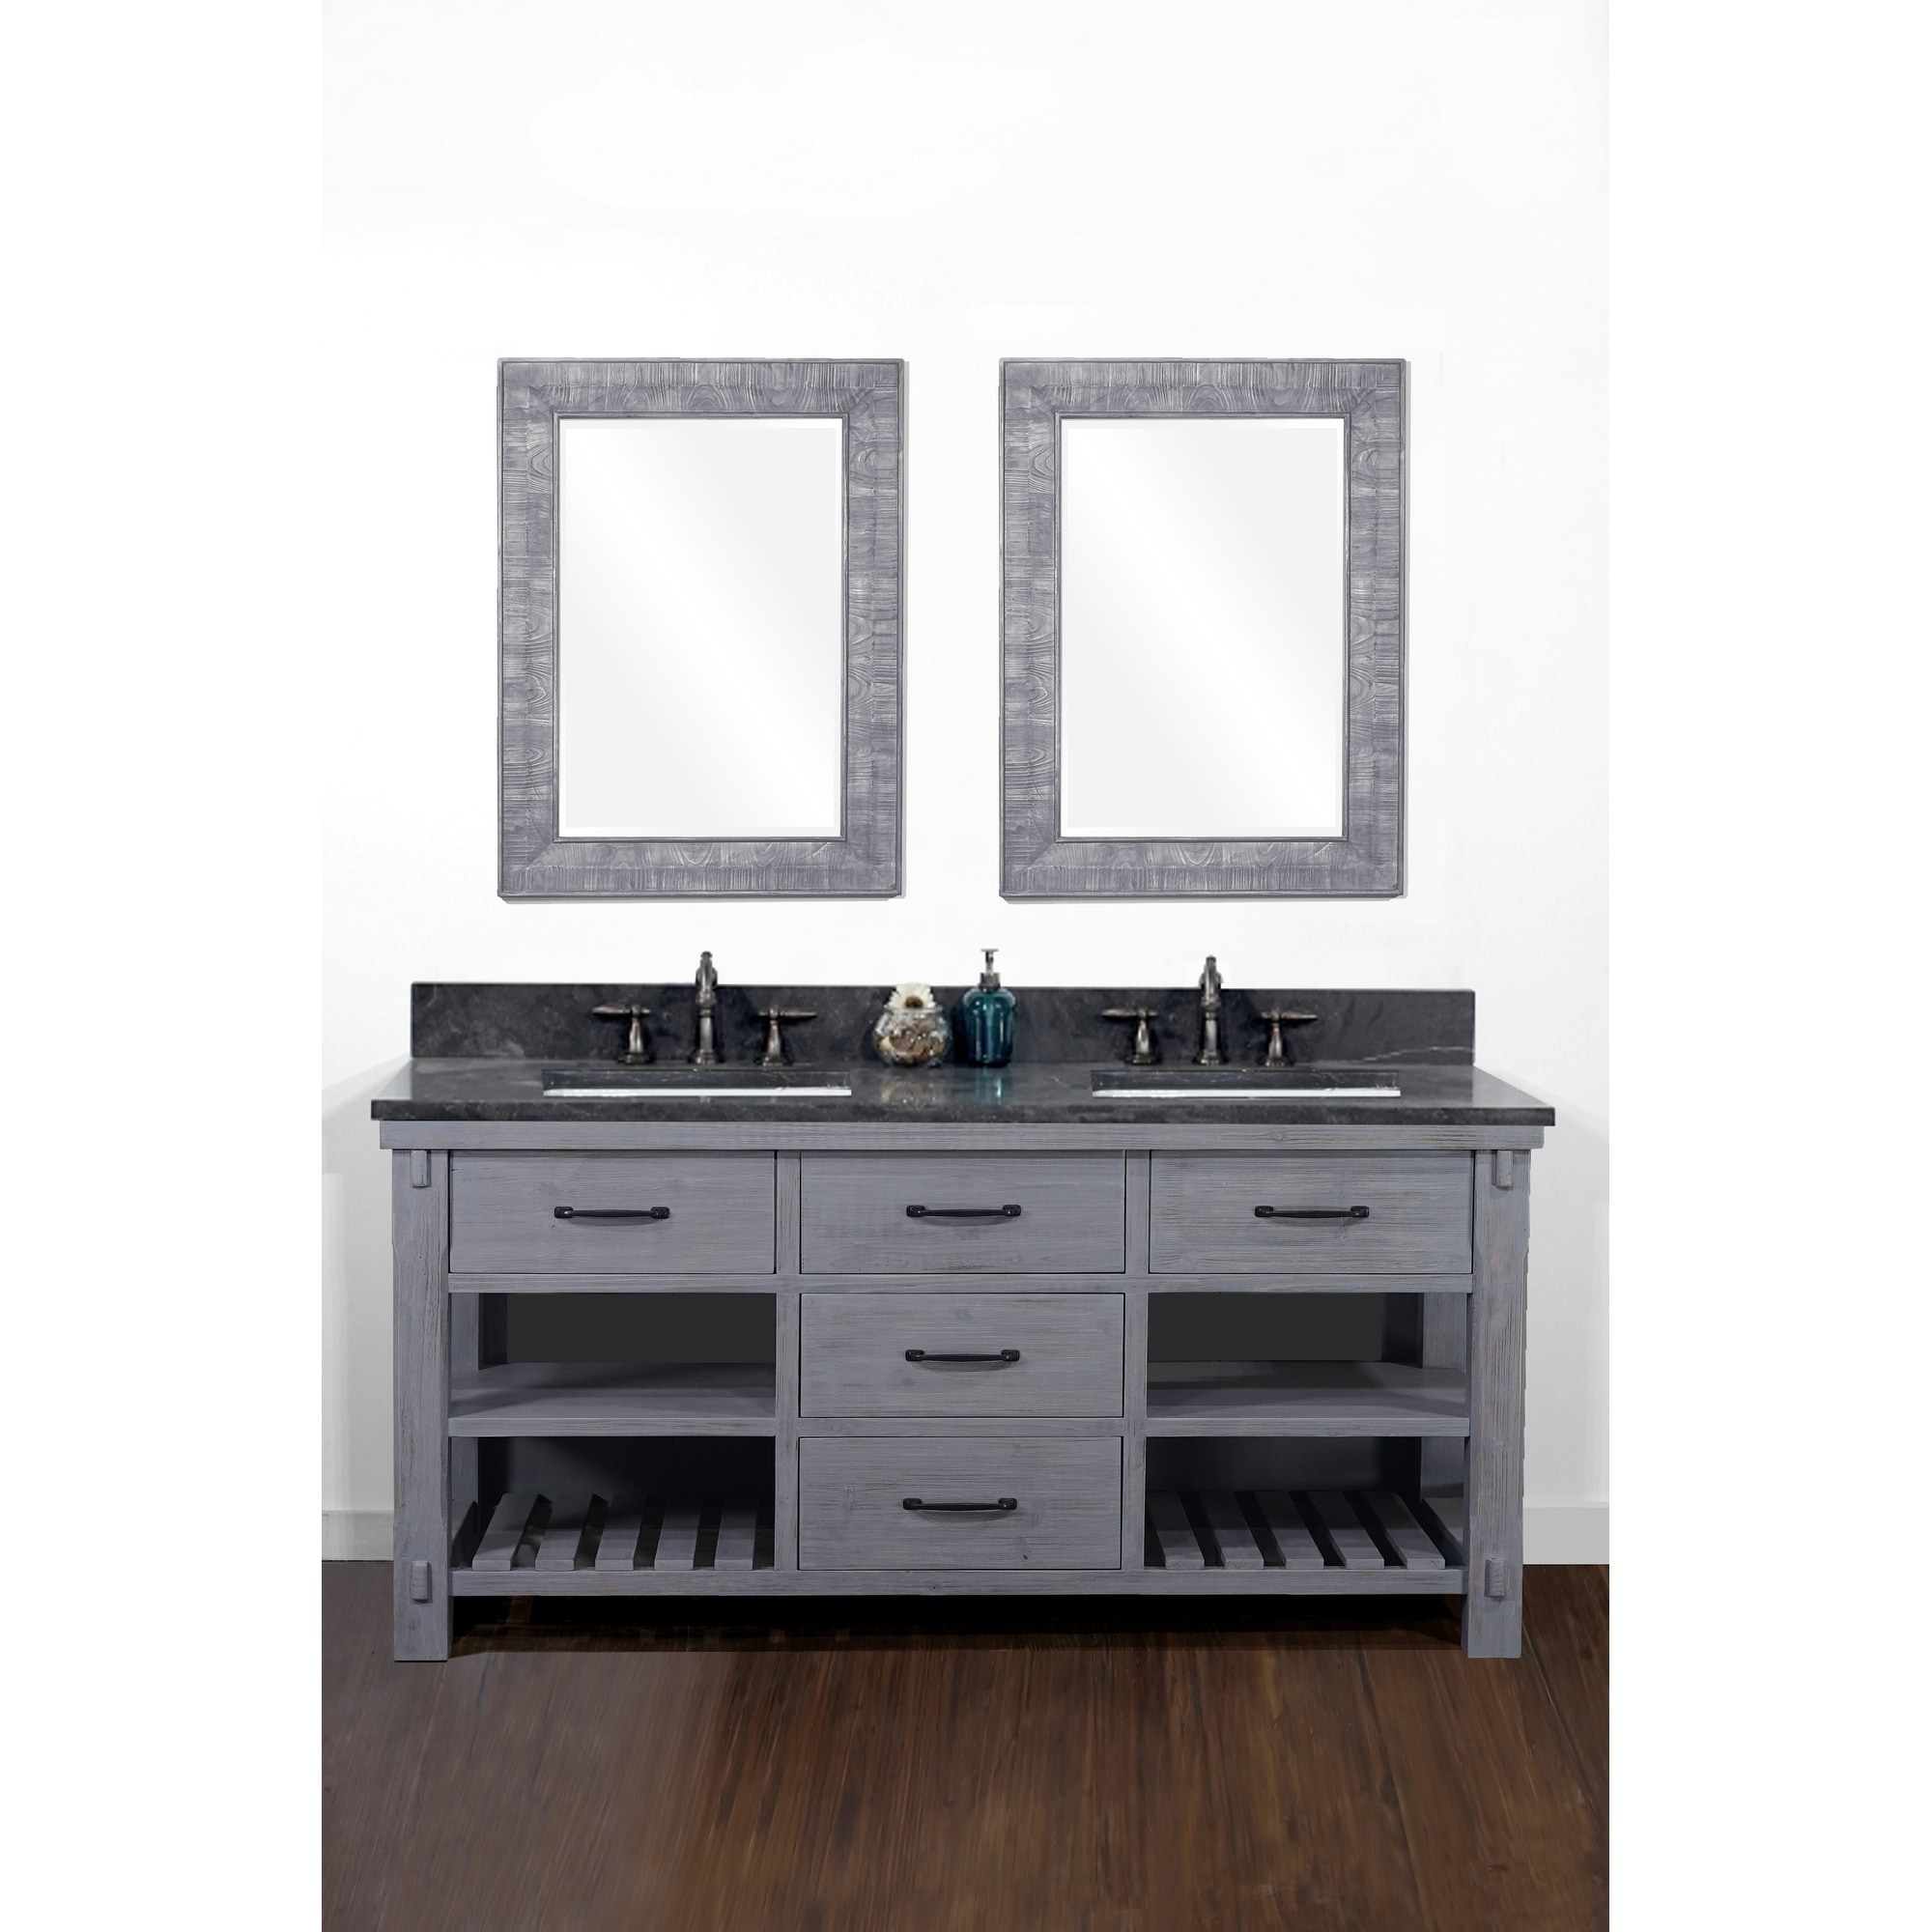 60 Rustic Solid Fir Double Sink Vanity In Blue Grey Driftwood Finish With Marble Top No Faucet Overstock 30510565